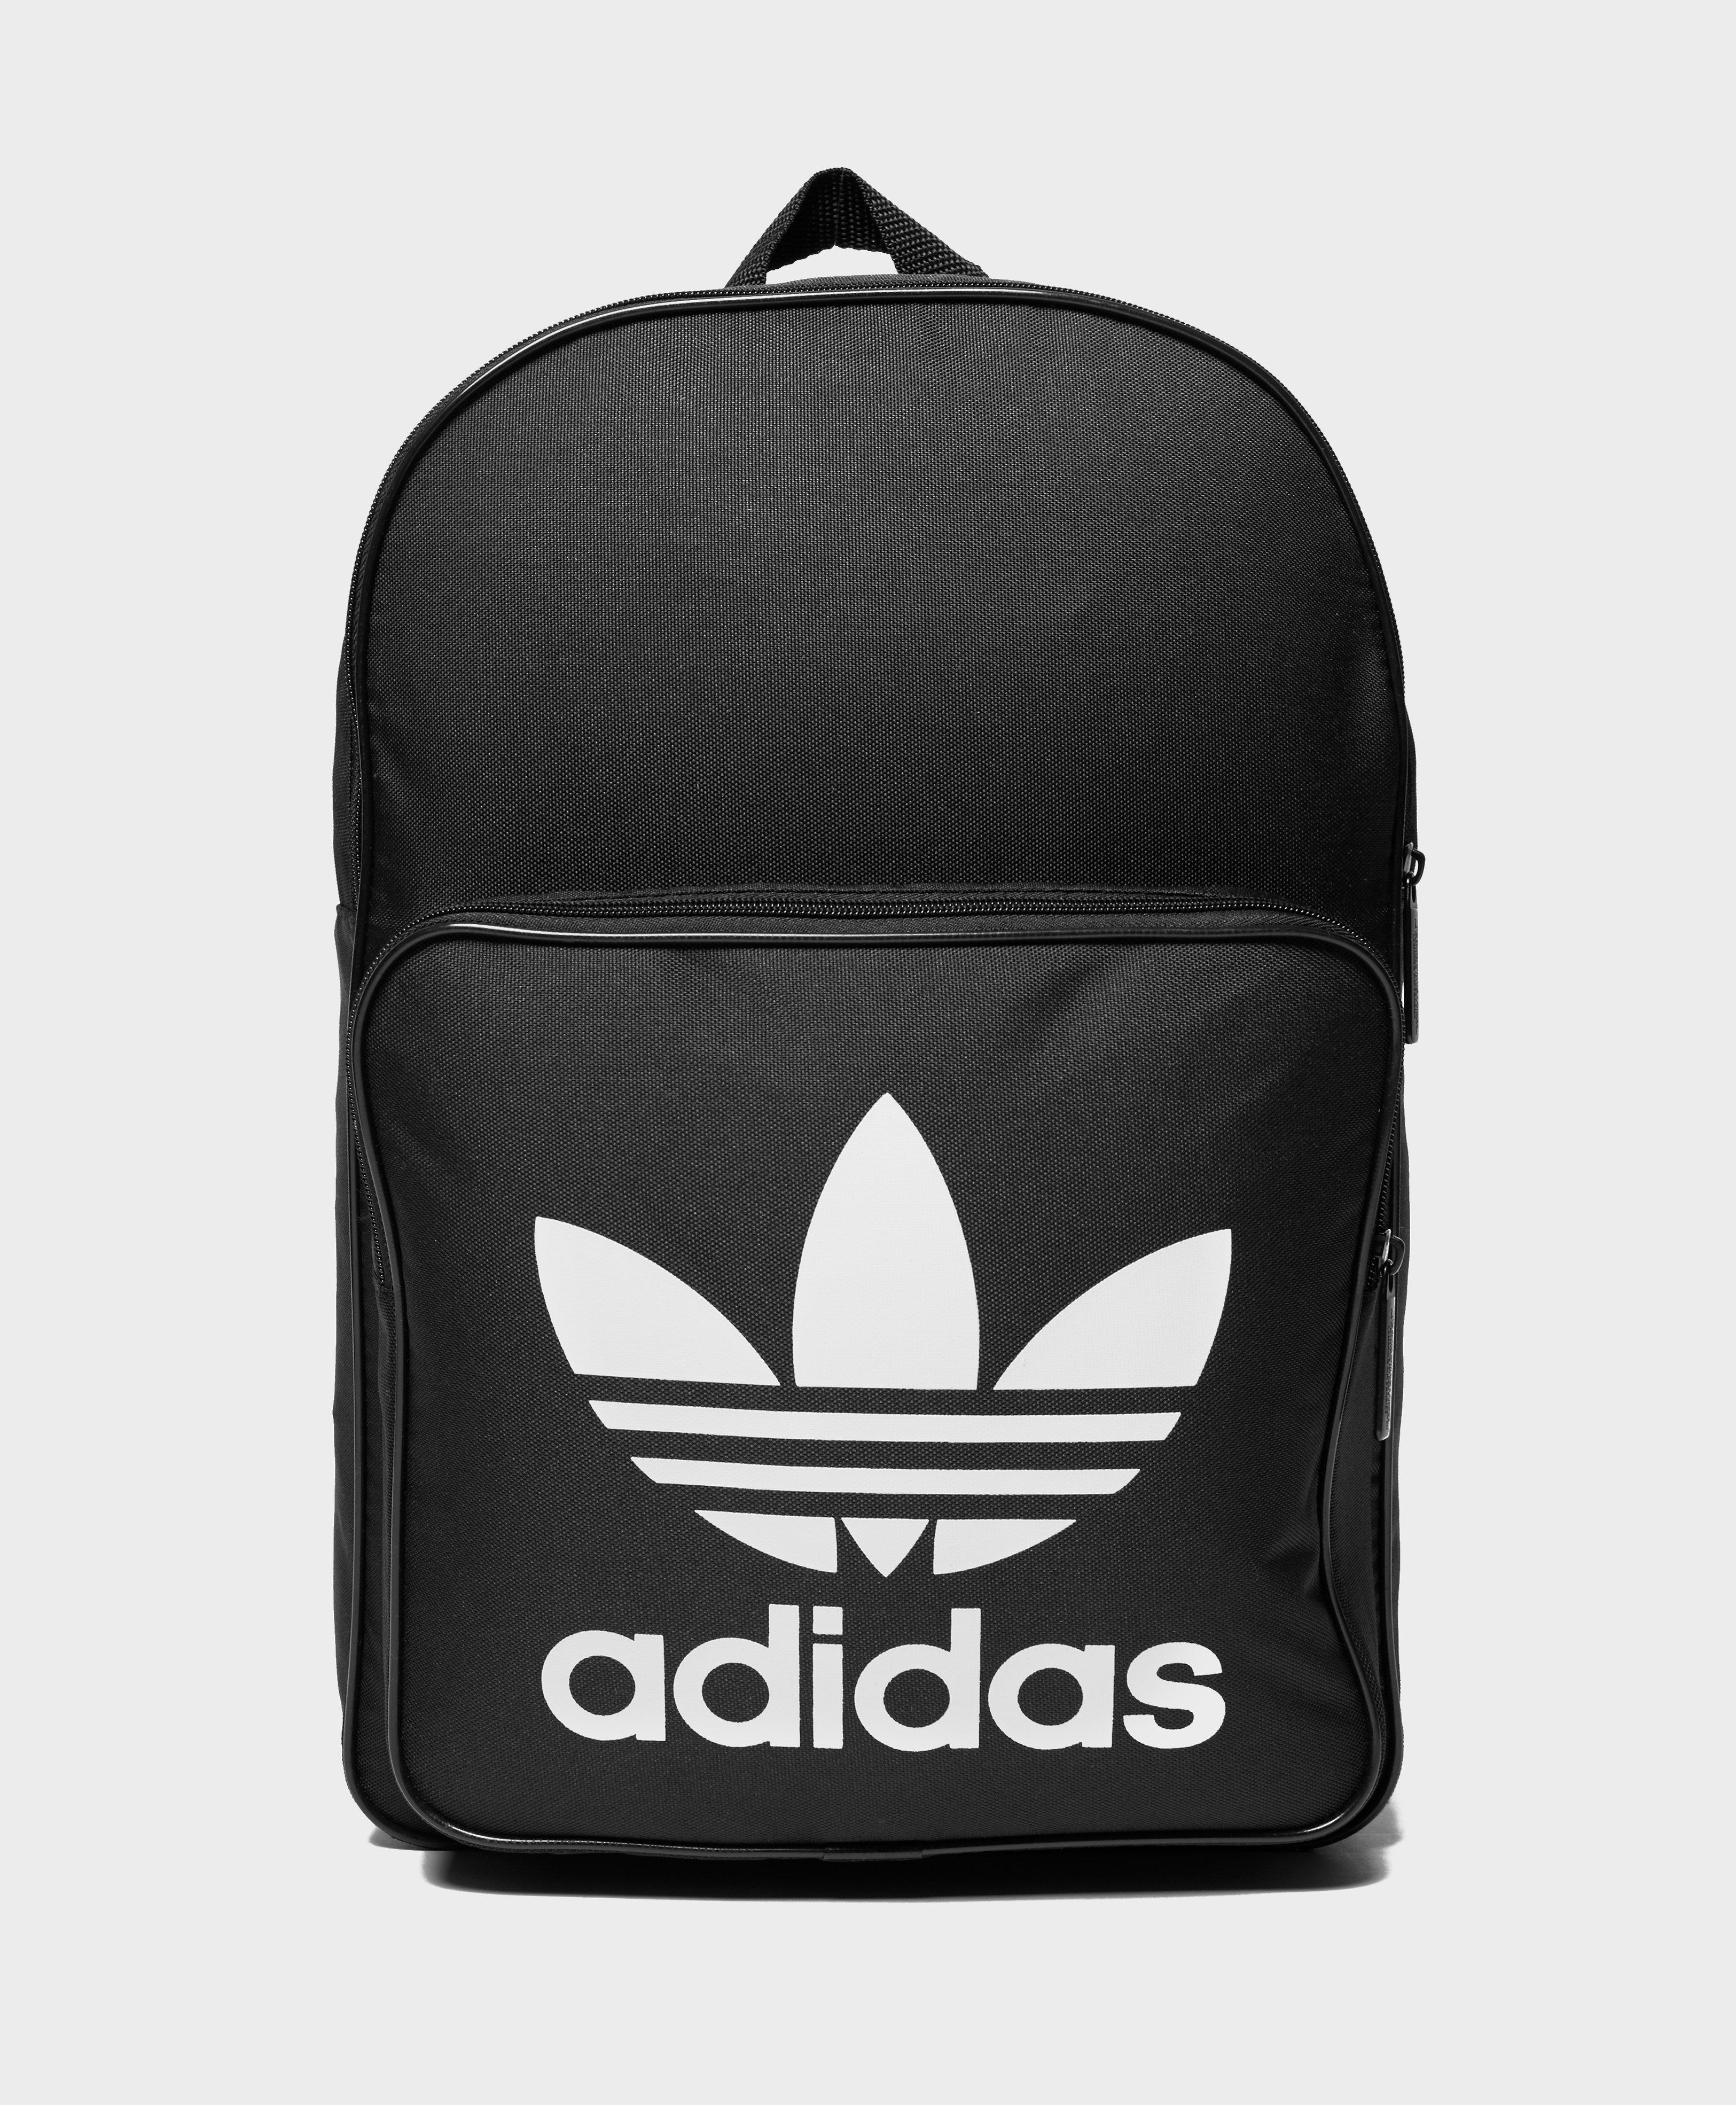 adidas Originals Trefoil Backpack In Black With Front Pocket Bk6723 ... 672065ad3a310